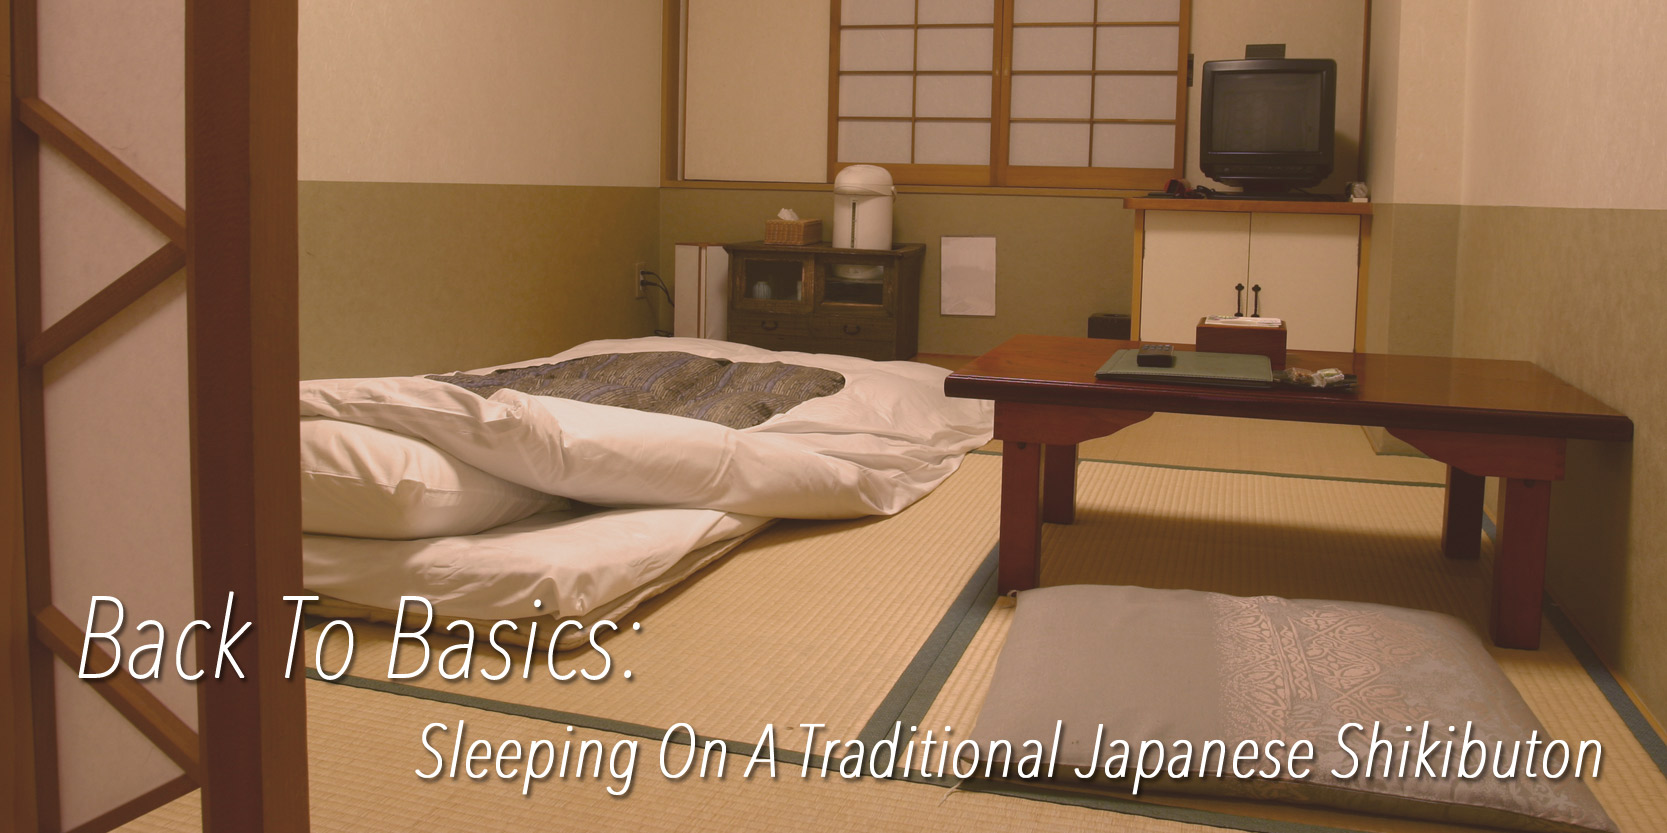 Blog Back To Basics Sleeping On A Traditional Japanese Shikibuton